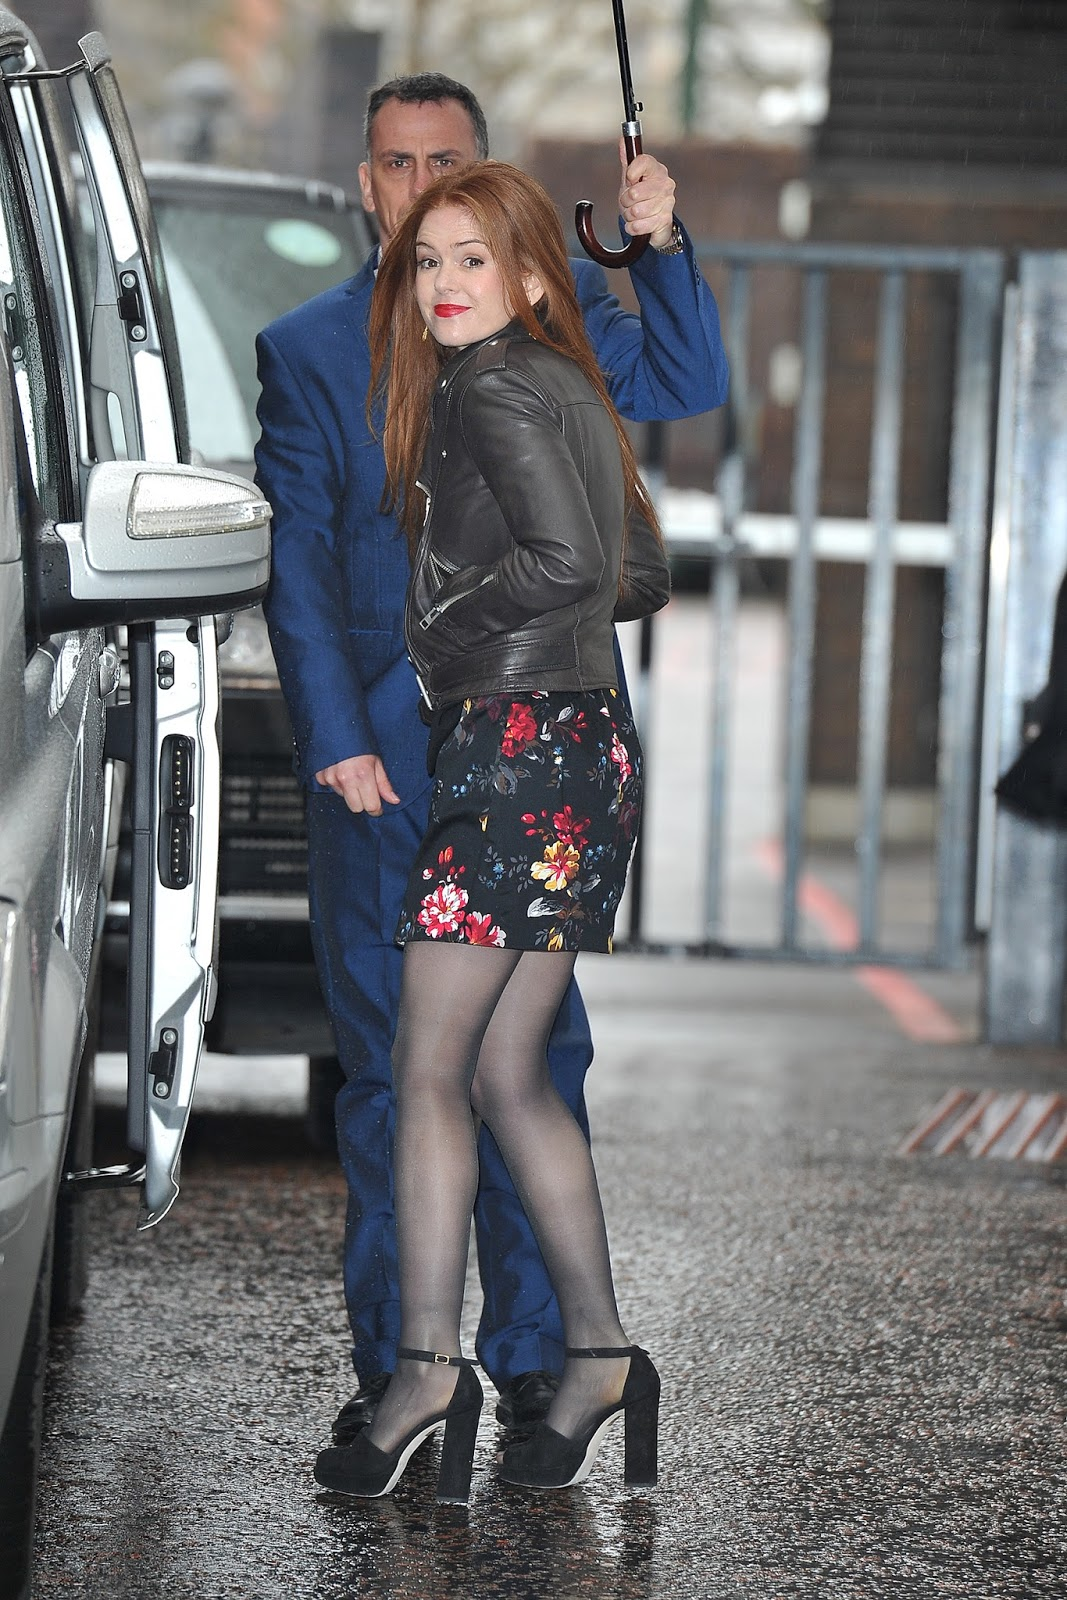 Isla Fisher At Itv Studios In London, February 22, 2016 -5192